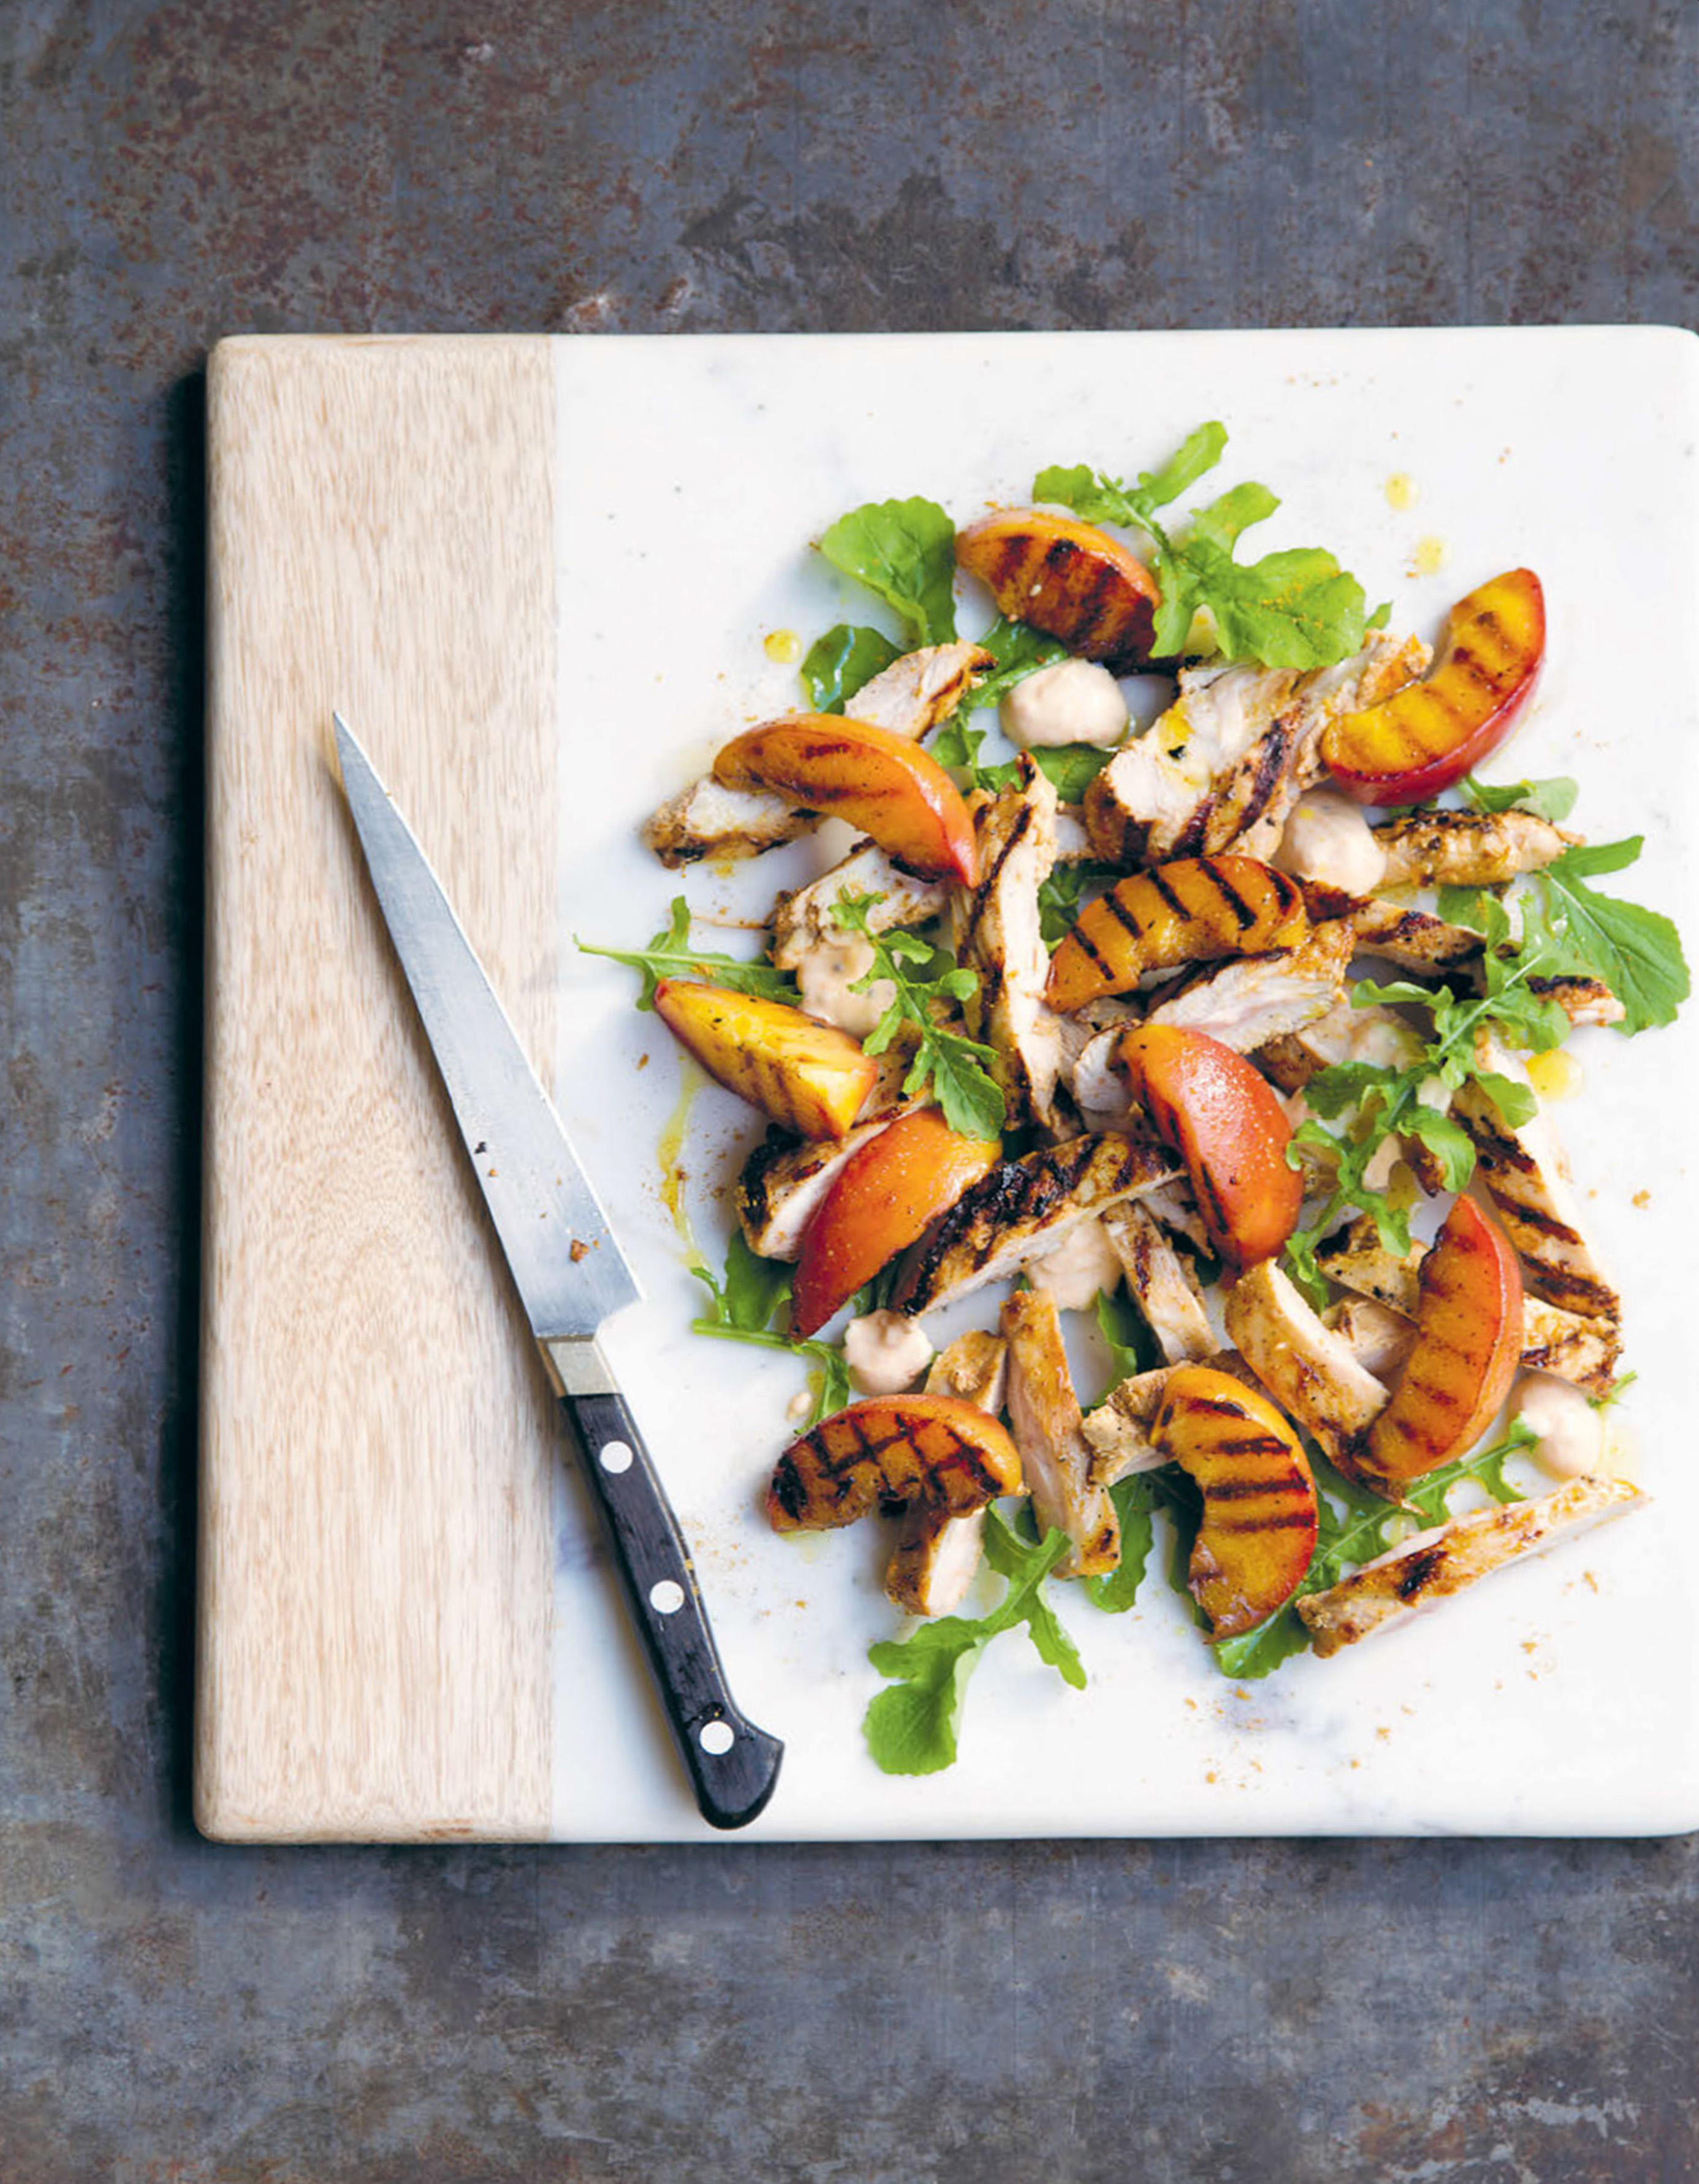 Grilled peaches and chicken with rocket and kasundi